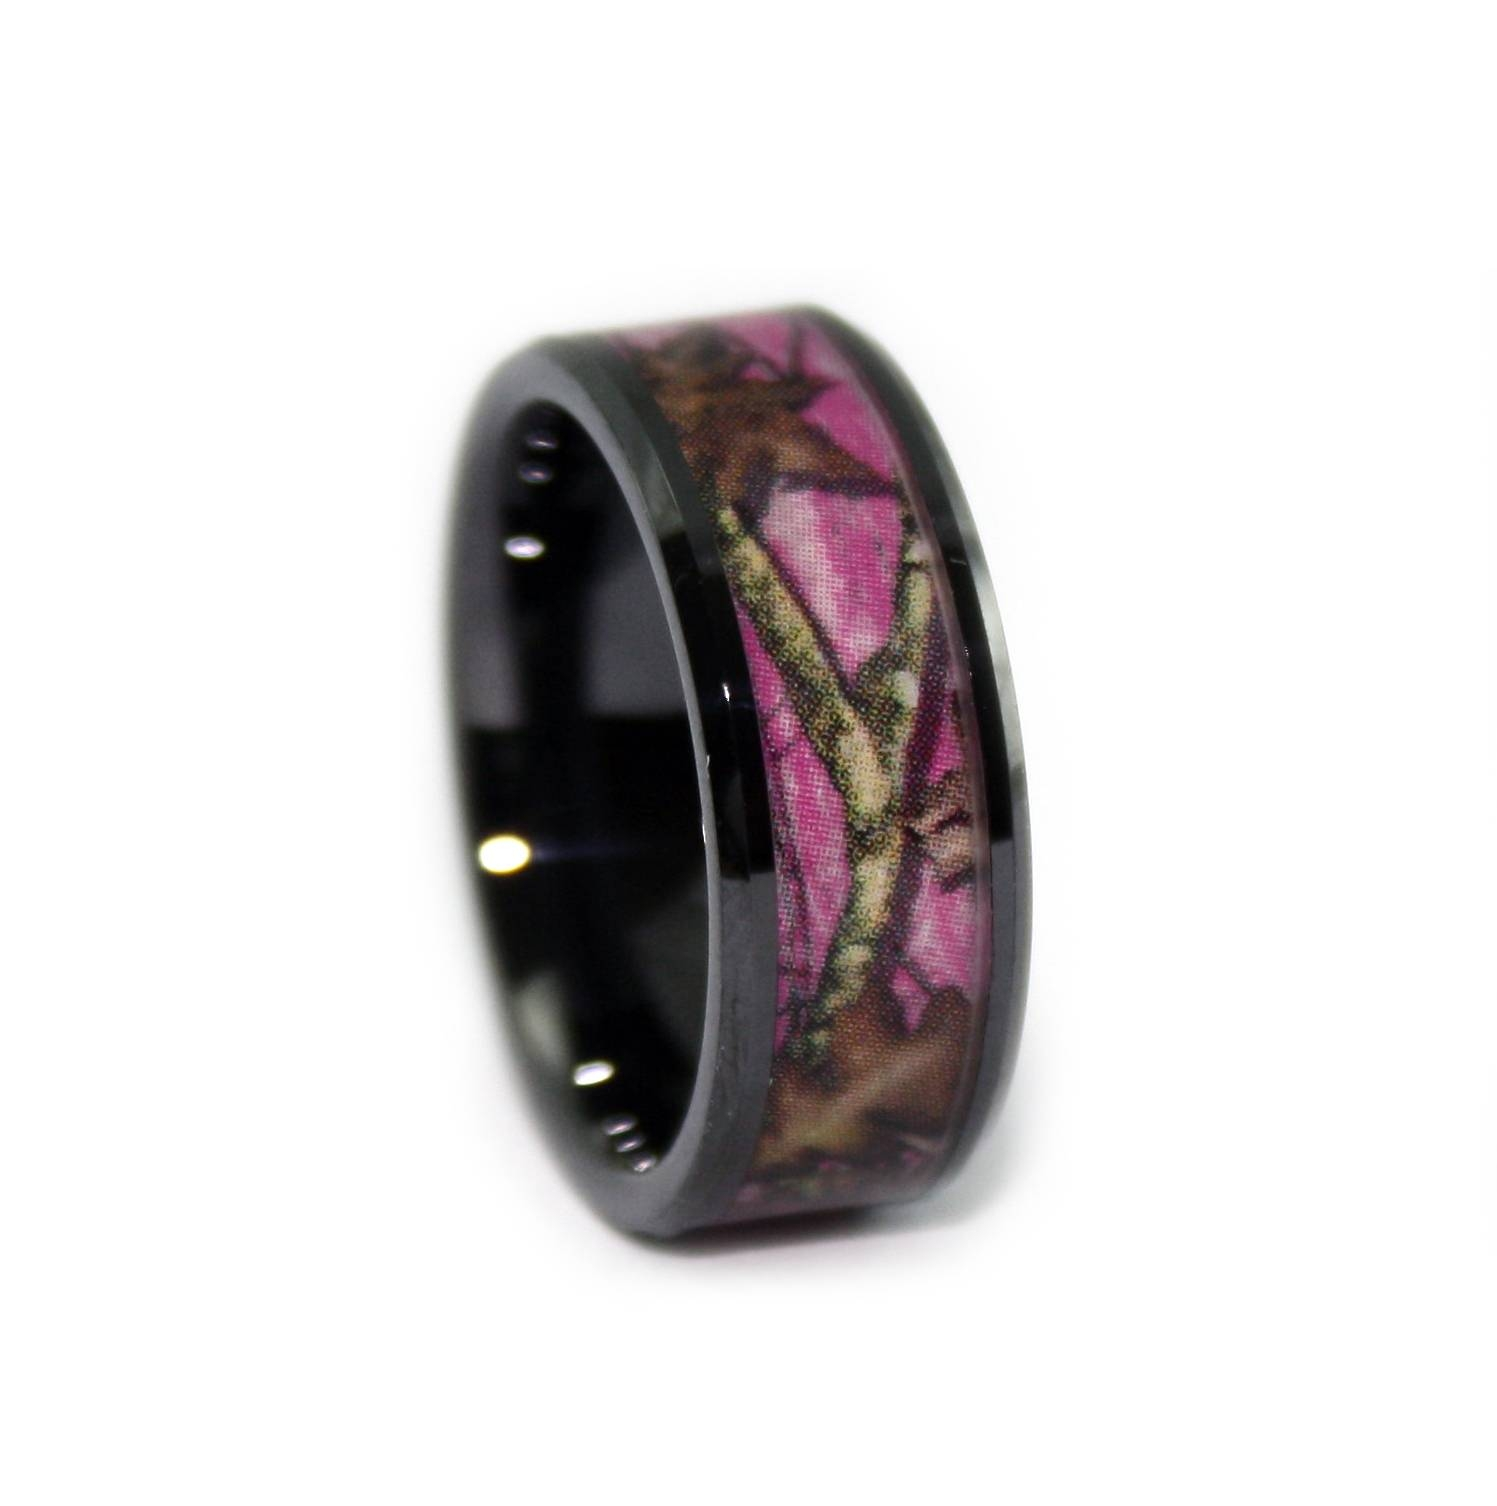 51 camo wedding band sets camo wedding ring set for him and her pertaining to - Camo Wedding Ring Sets For Him And Her